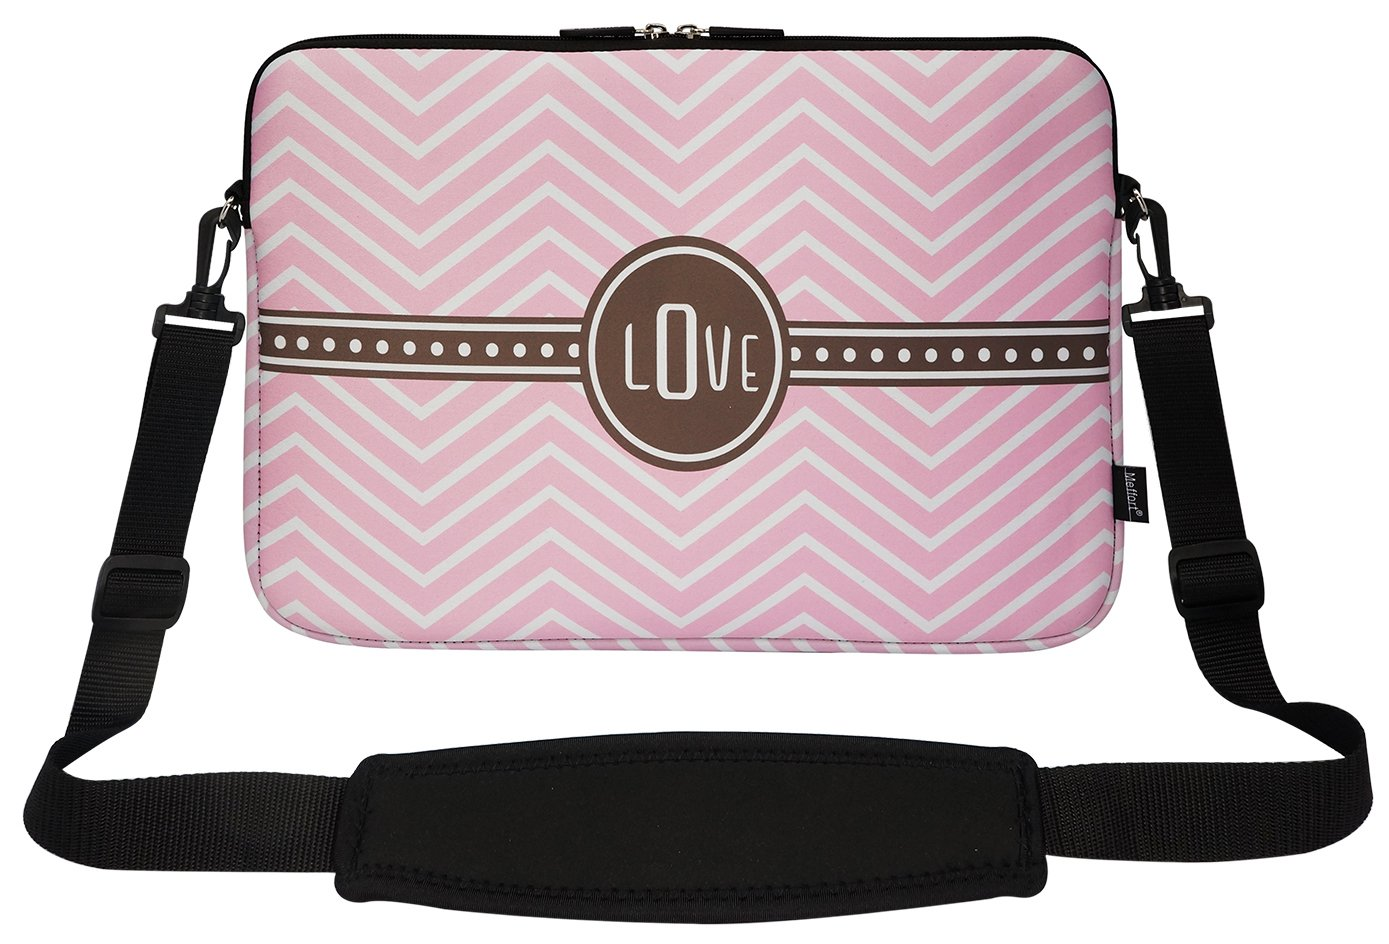 Meffort Inc 15 15.6 Inch Neoprene Matching Pattern Laptop Carrying Sleeve Bag with Hidden Handle and Shoulder Strap - ''Love'' Gift Warp